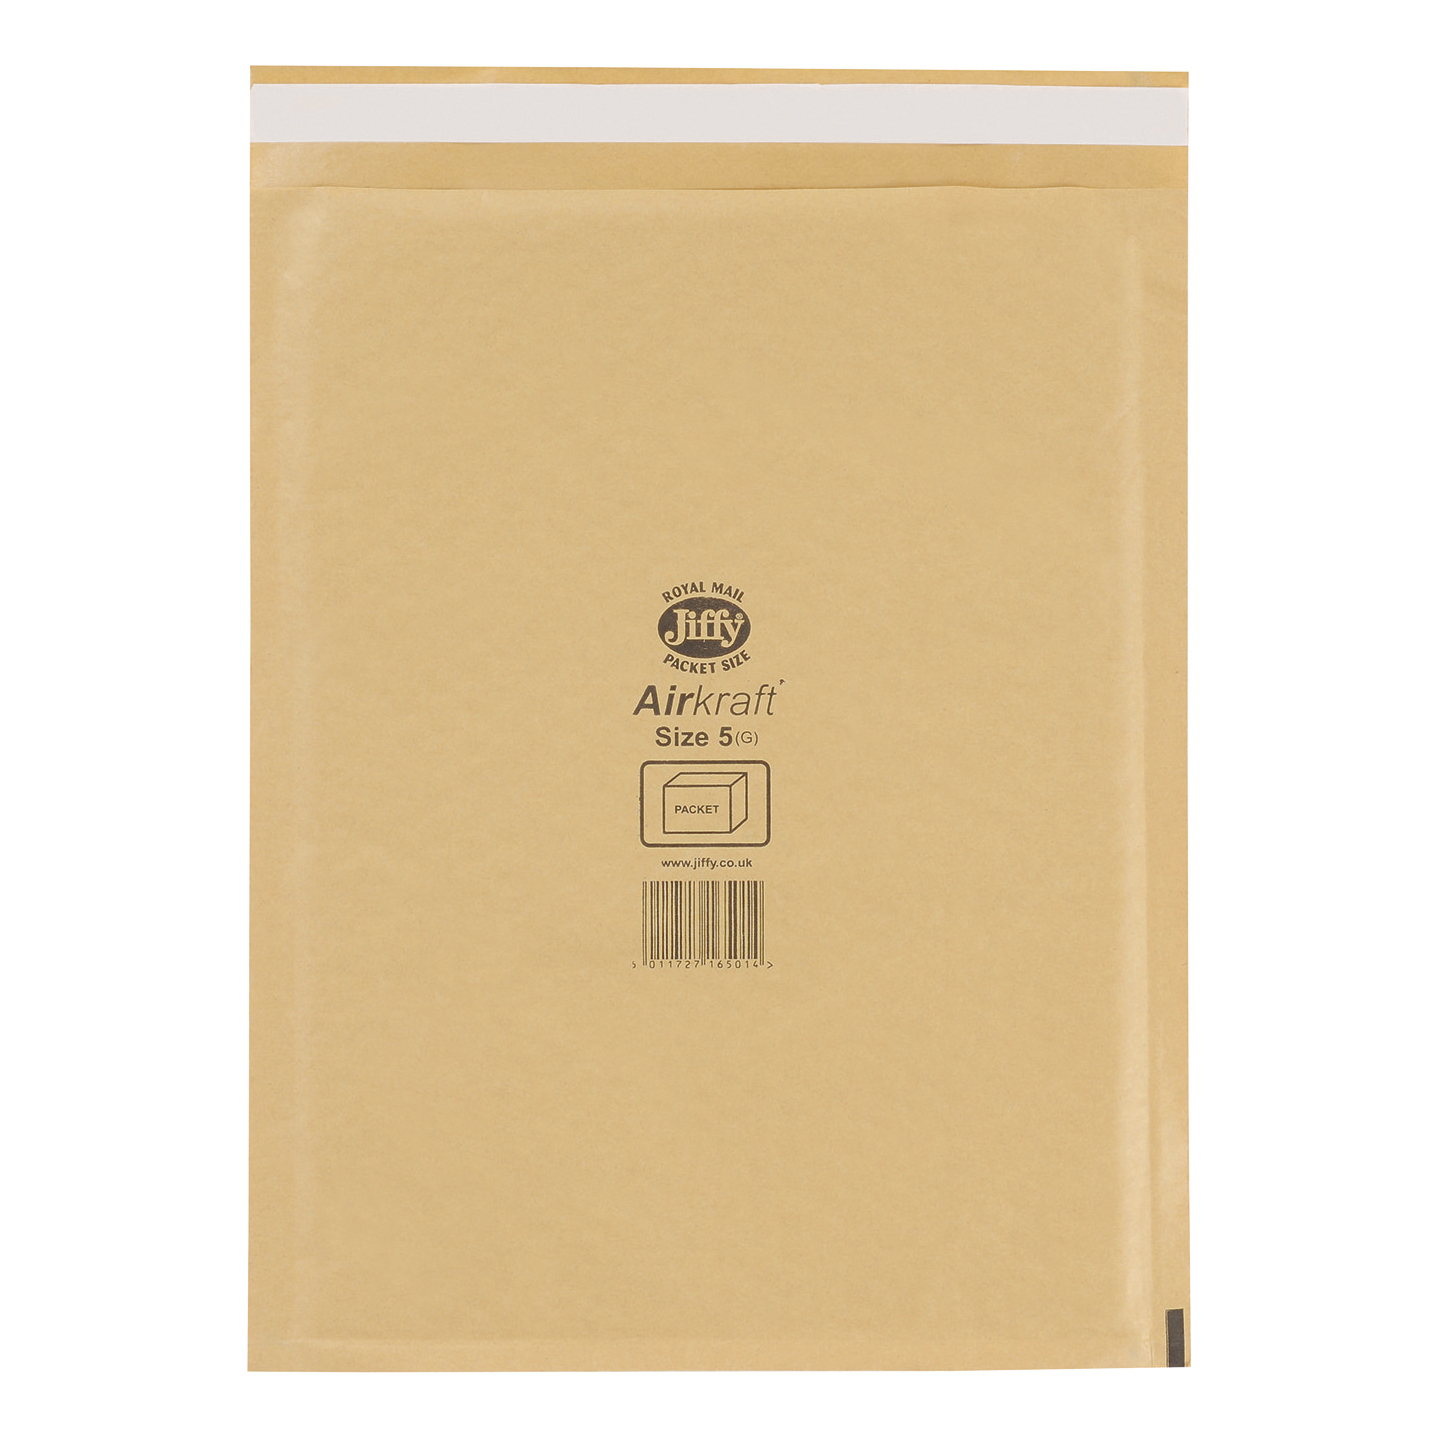 Jiffy Airkraft Bubble Bag Envelopes Size 5 Gold 260x345mm Ref JL-GO-5 [Pack 50]